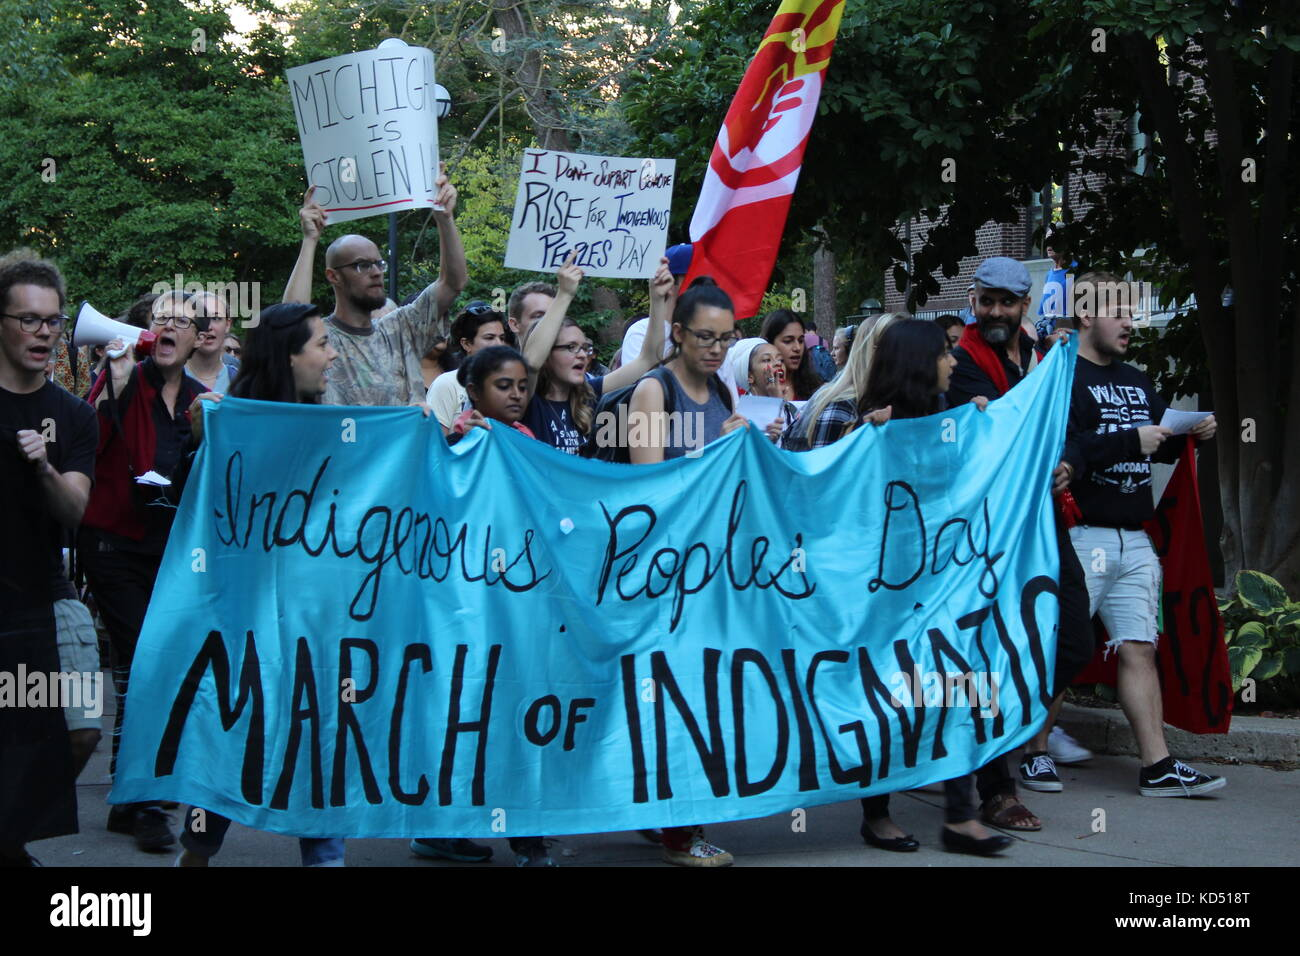 A protest in downtown Ann Arbor about hate, native americans, and Columbus Day - Stock Image